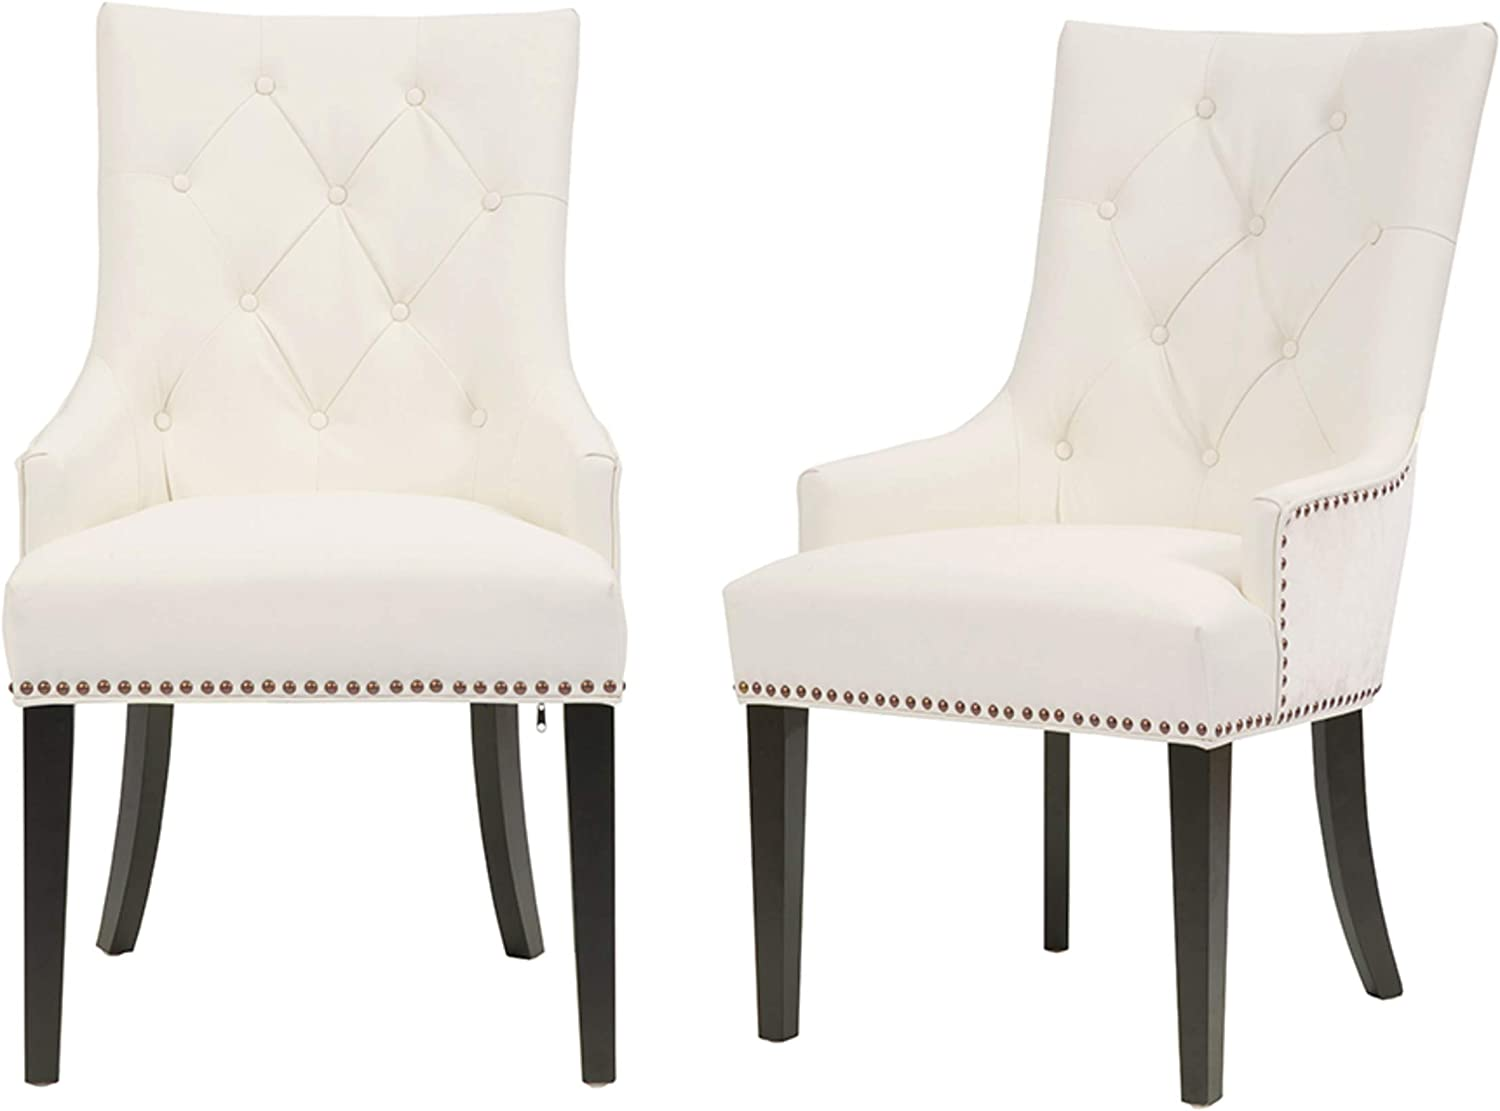 Iconic Home Cadence Dining Side Chair Button Tufted Pu Leather Velvet Polished Brass Nailheads Espresso Finished Wooden Legs White Modern Transitional Chairs Amazon Com